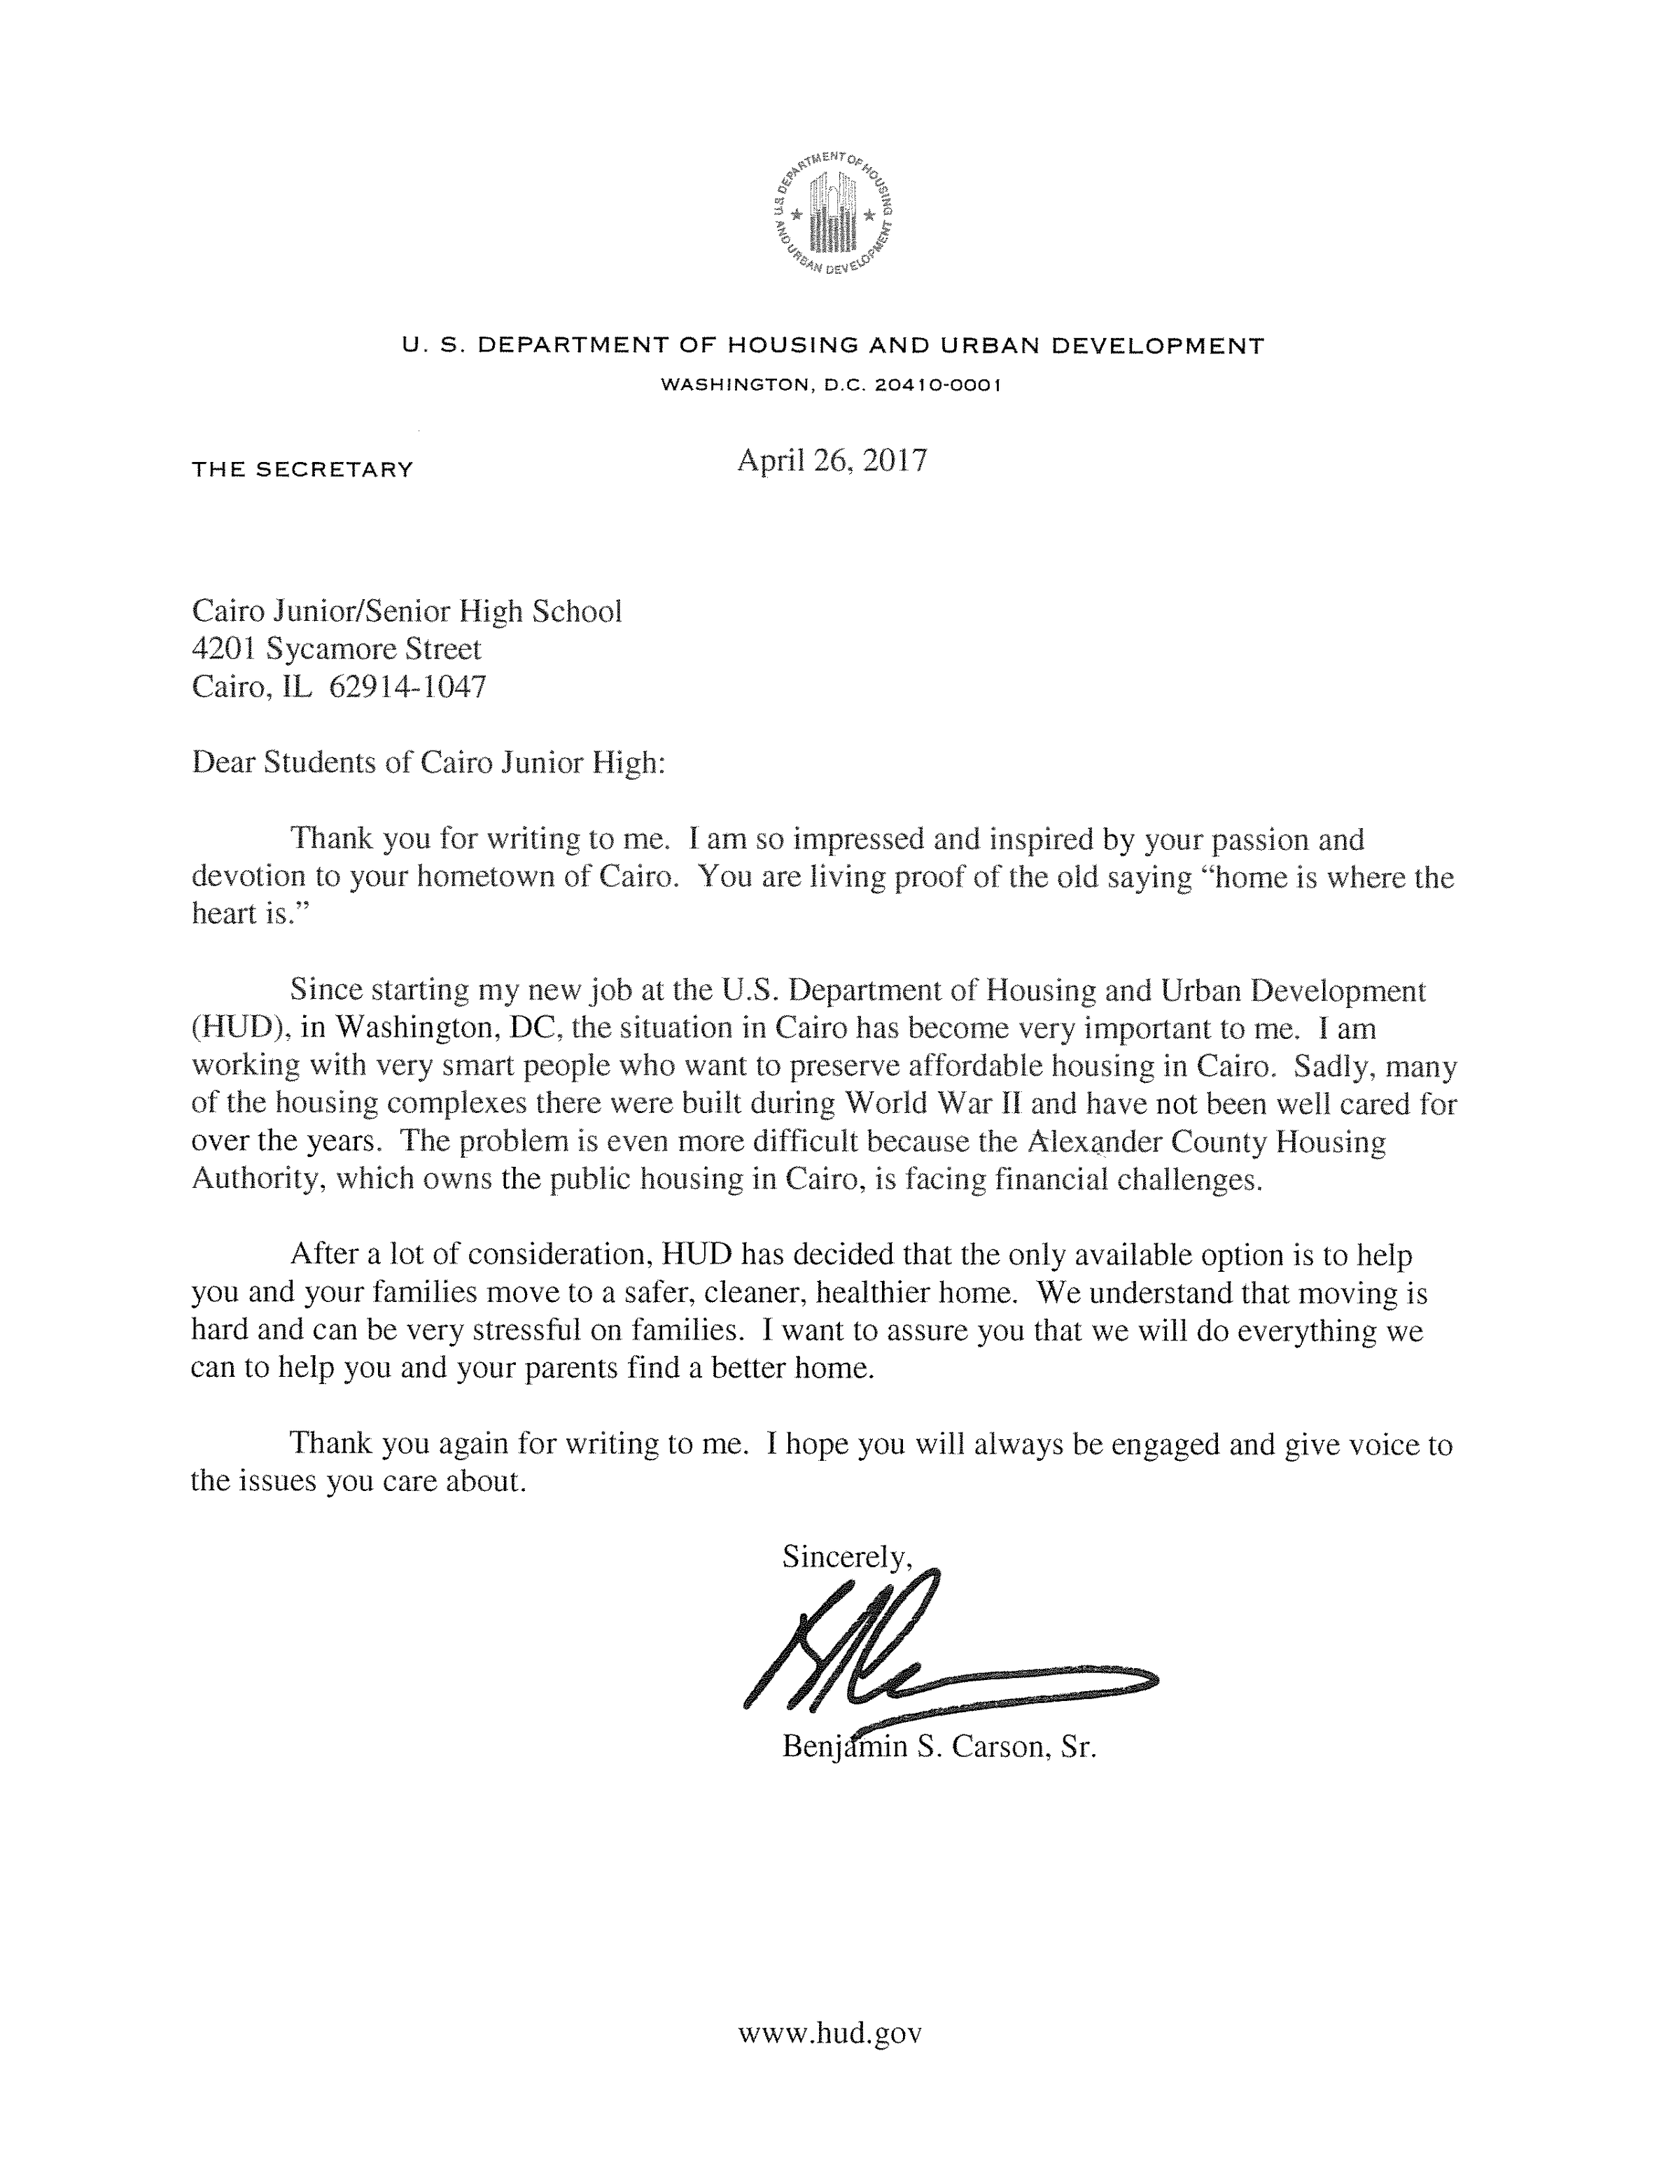 Ben Carson Responds To Letters From Students And Teachers In Cairo